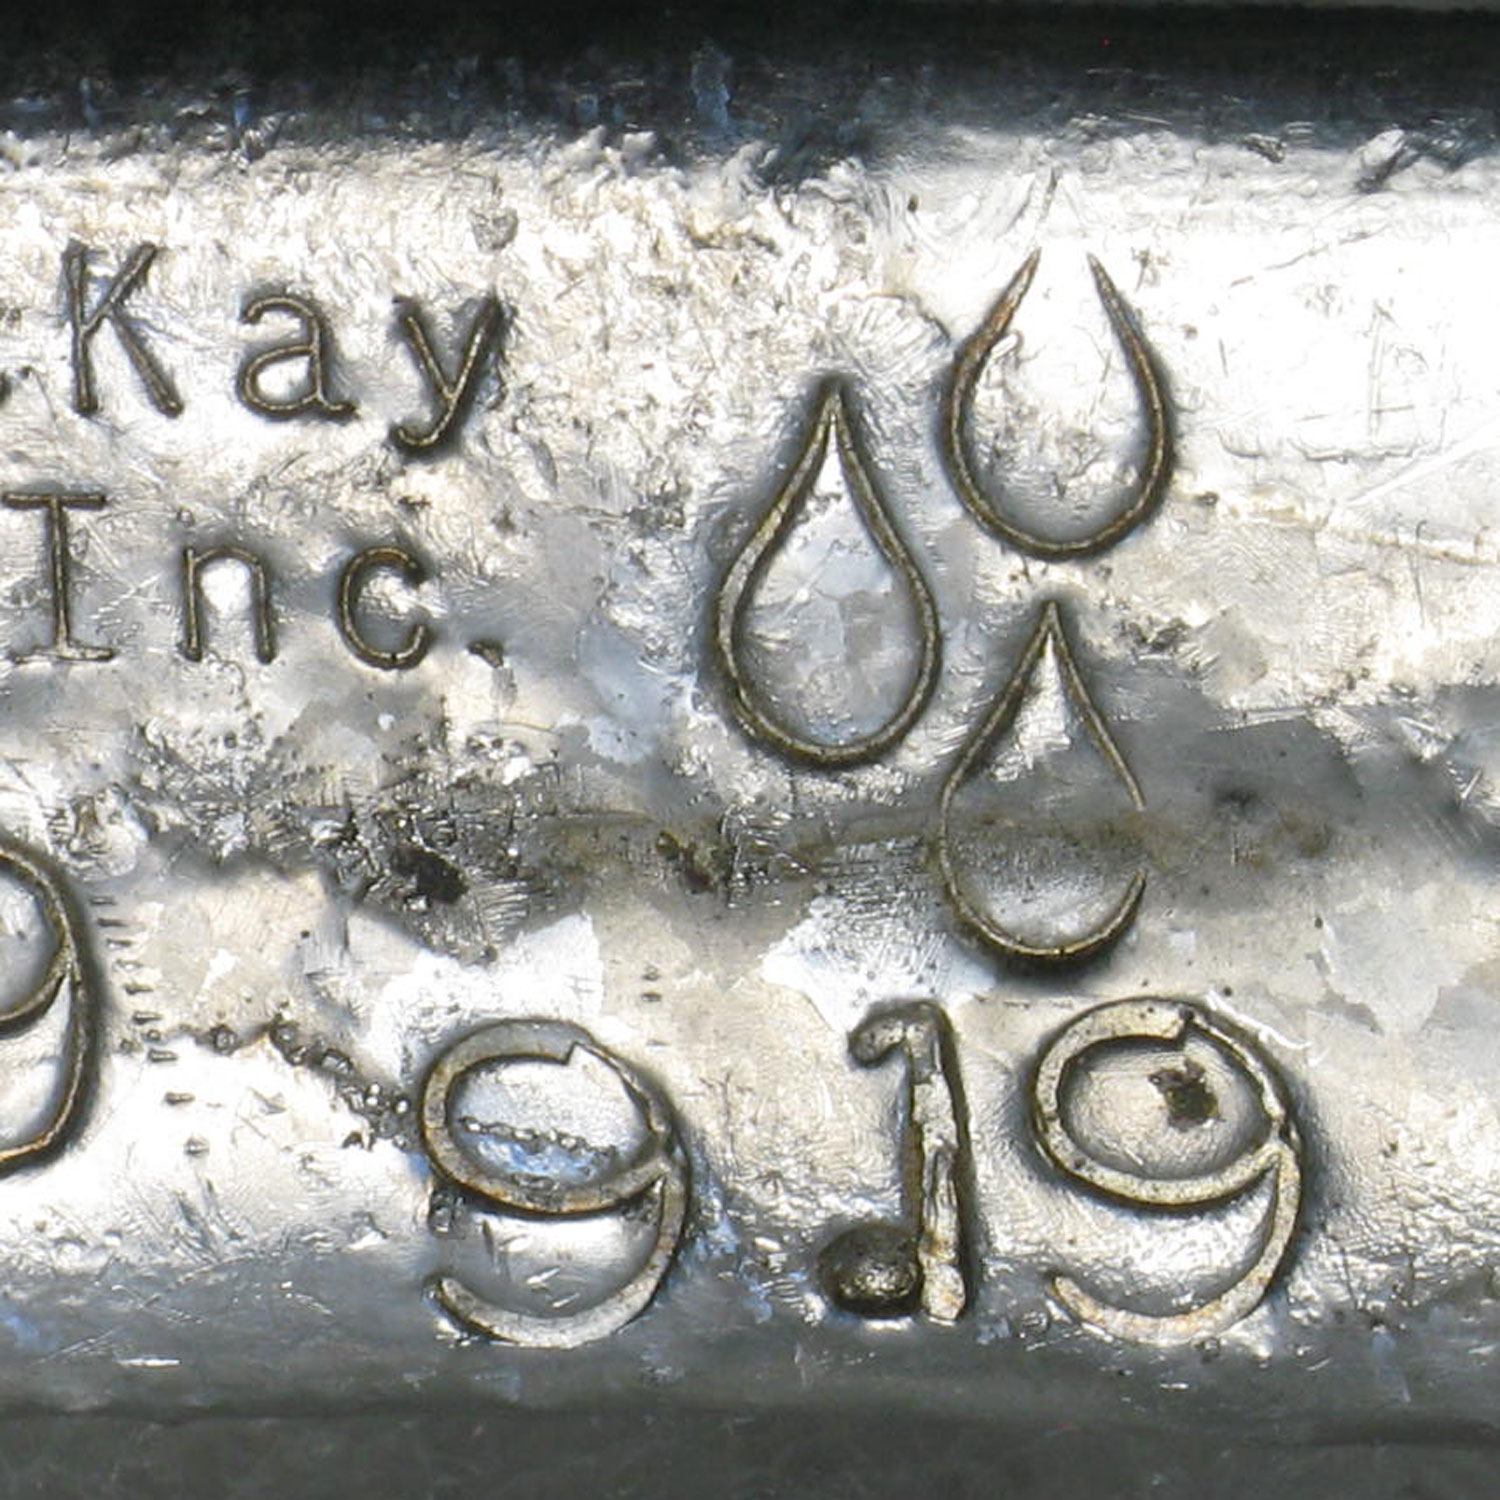 9.19 oz Silver Bars - B. R. MacKay & Sons